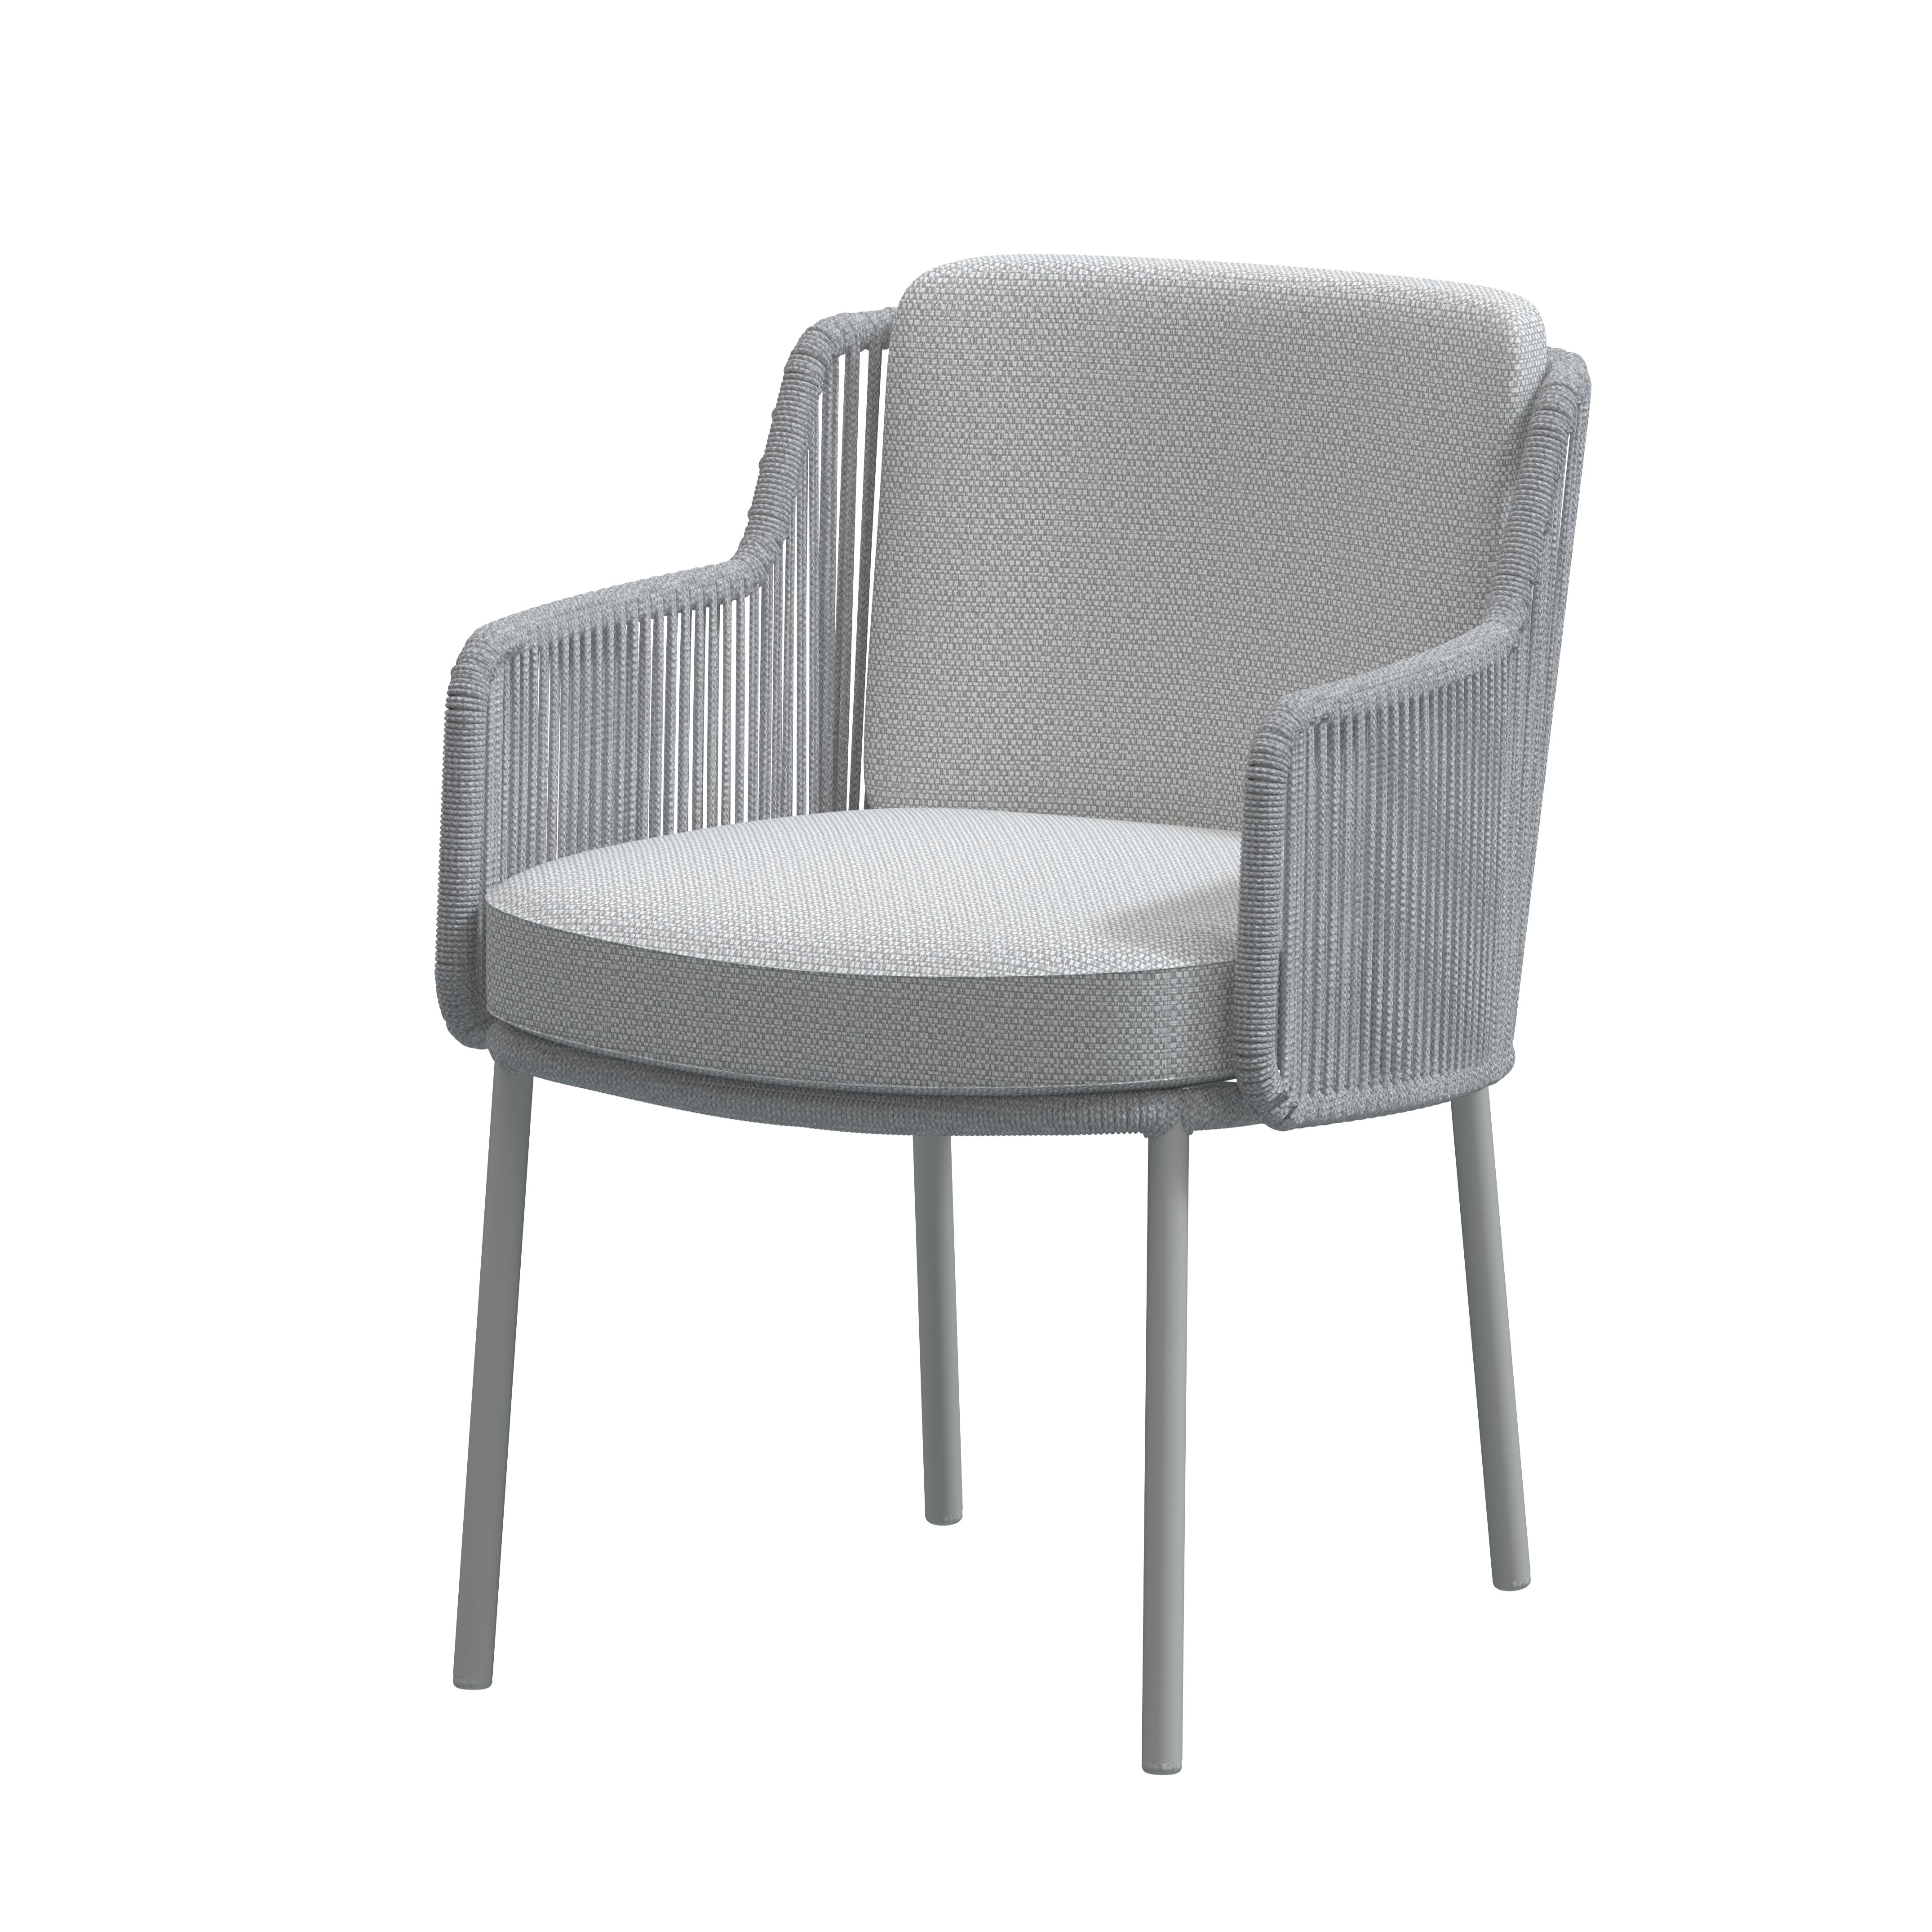 4 Seasons Bernini Chair w/ Cush.- Frozen